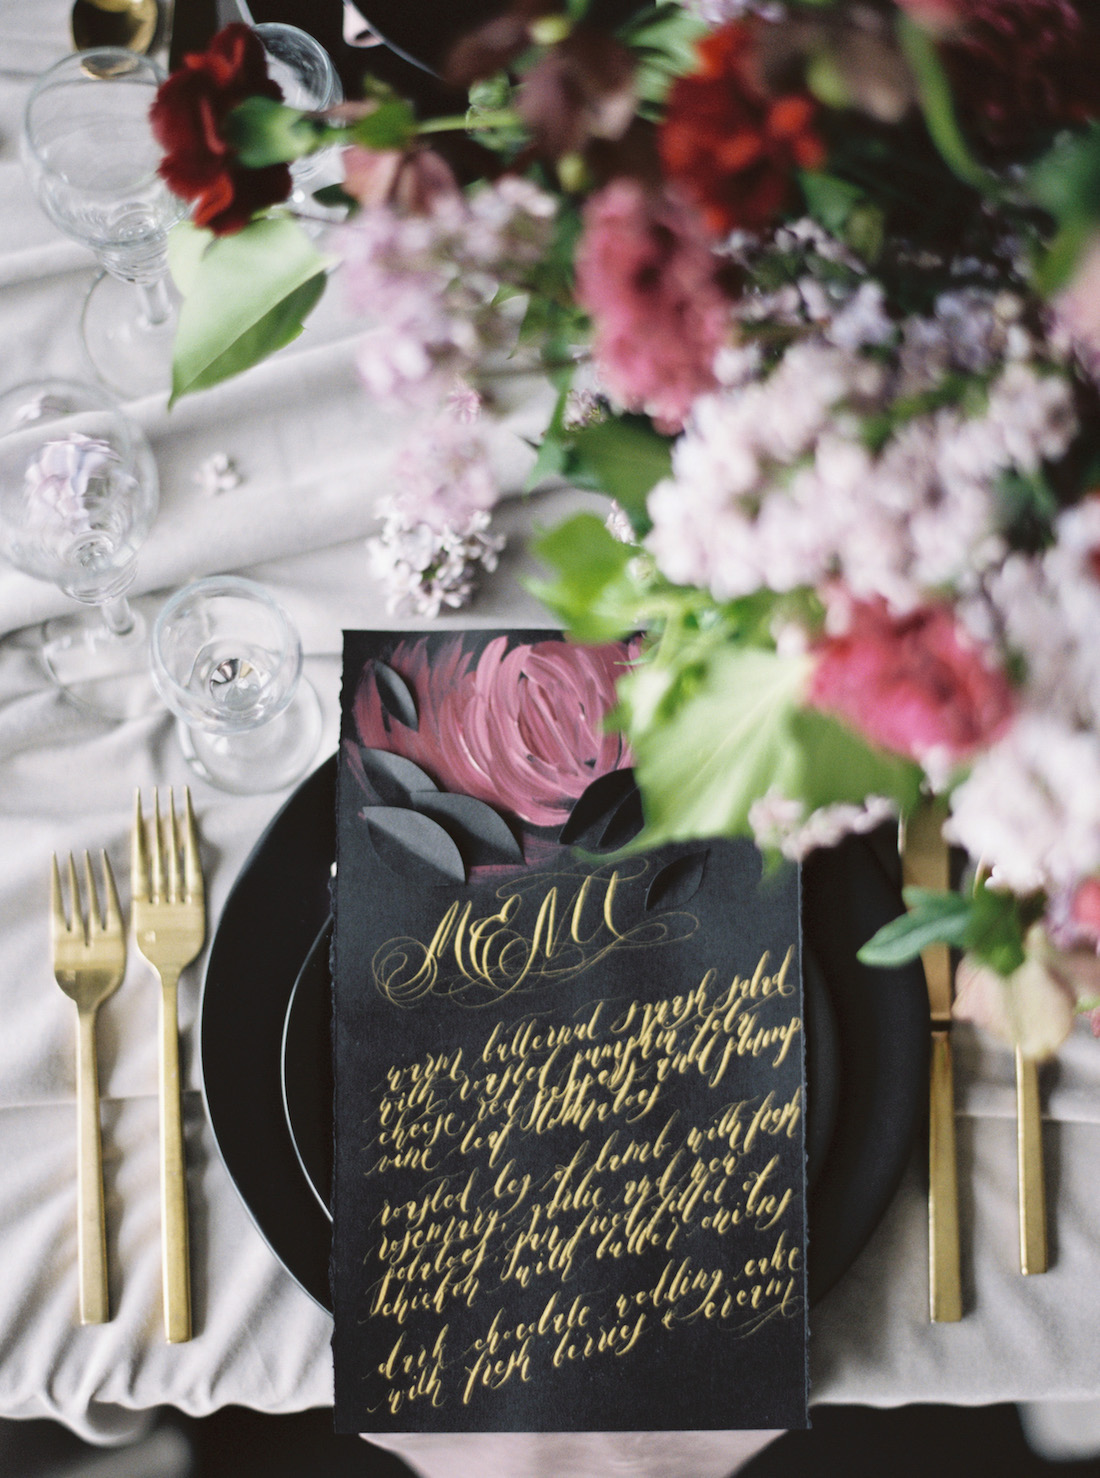 London Wedding Invitations with black wedding menu with gold calligraphy and dark pink flower cover with flowers from the table scape